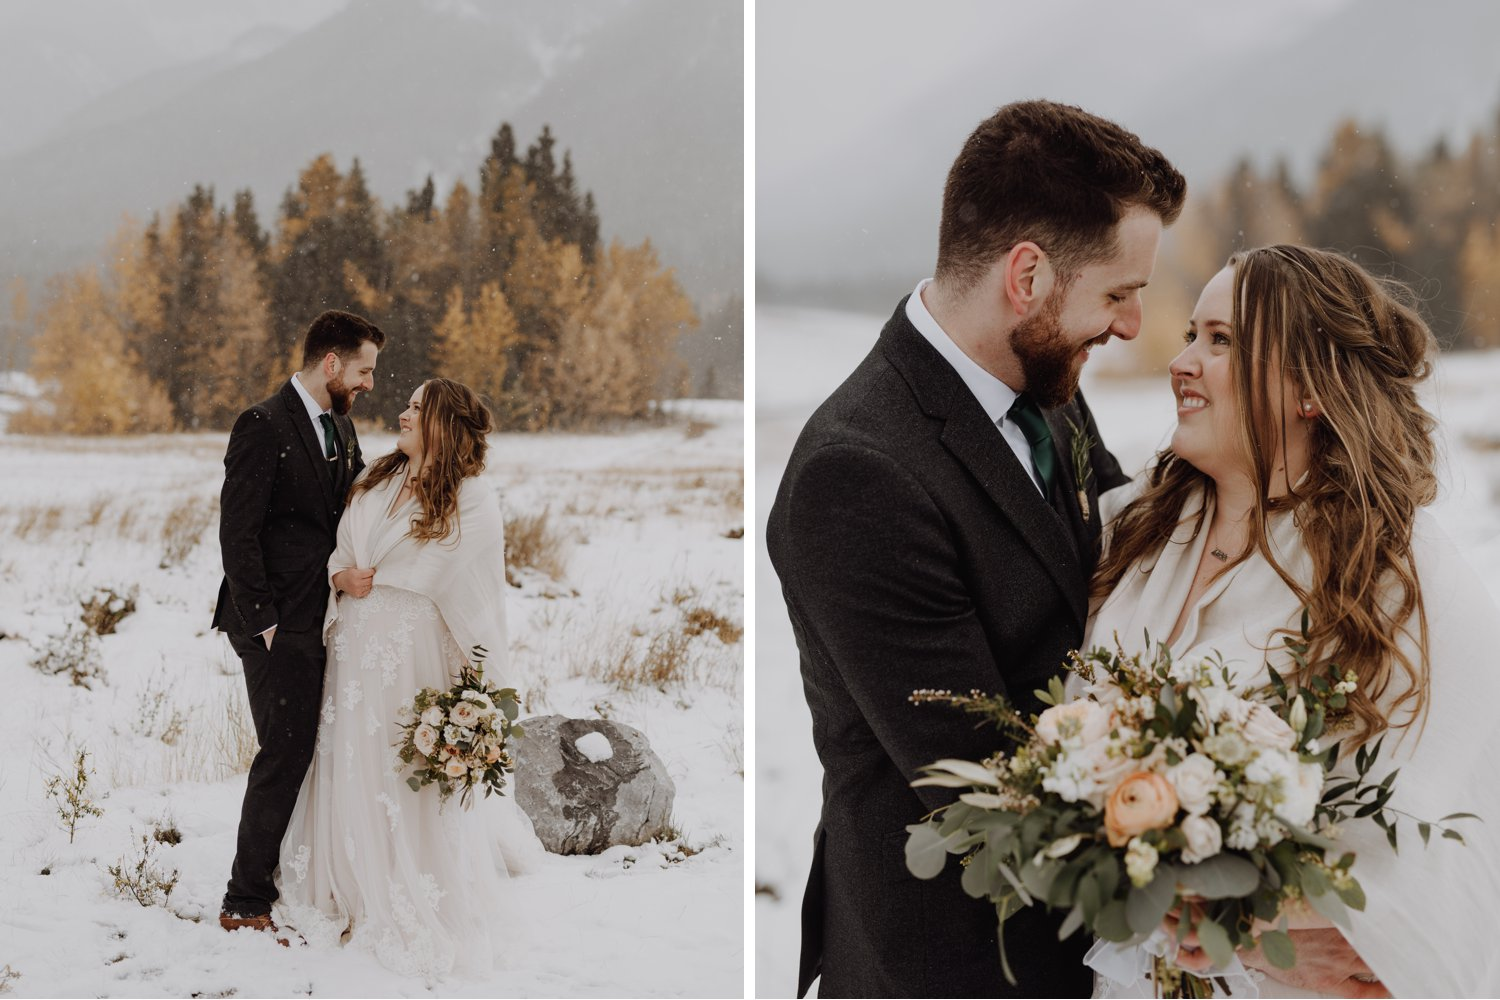 Banff Wedding - winter wedding bride and groom